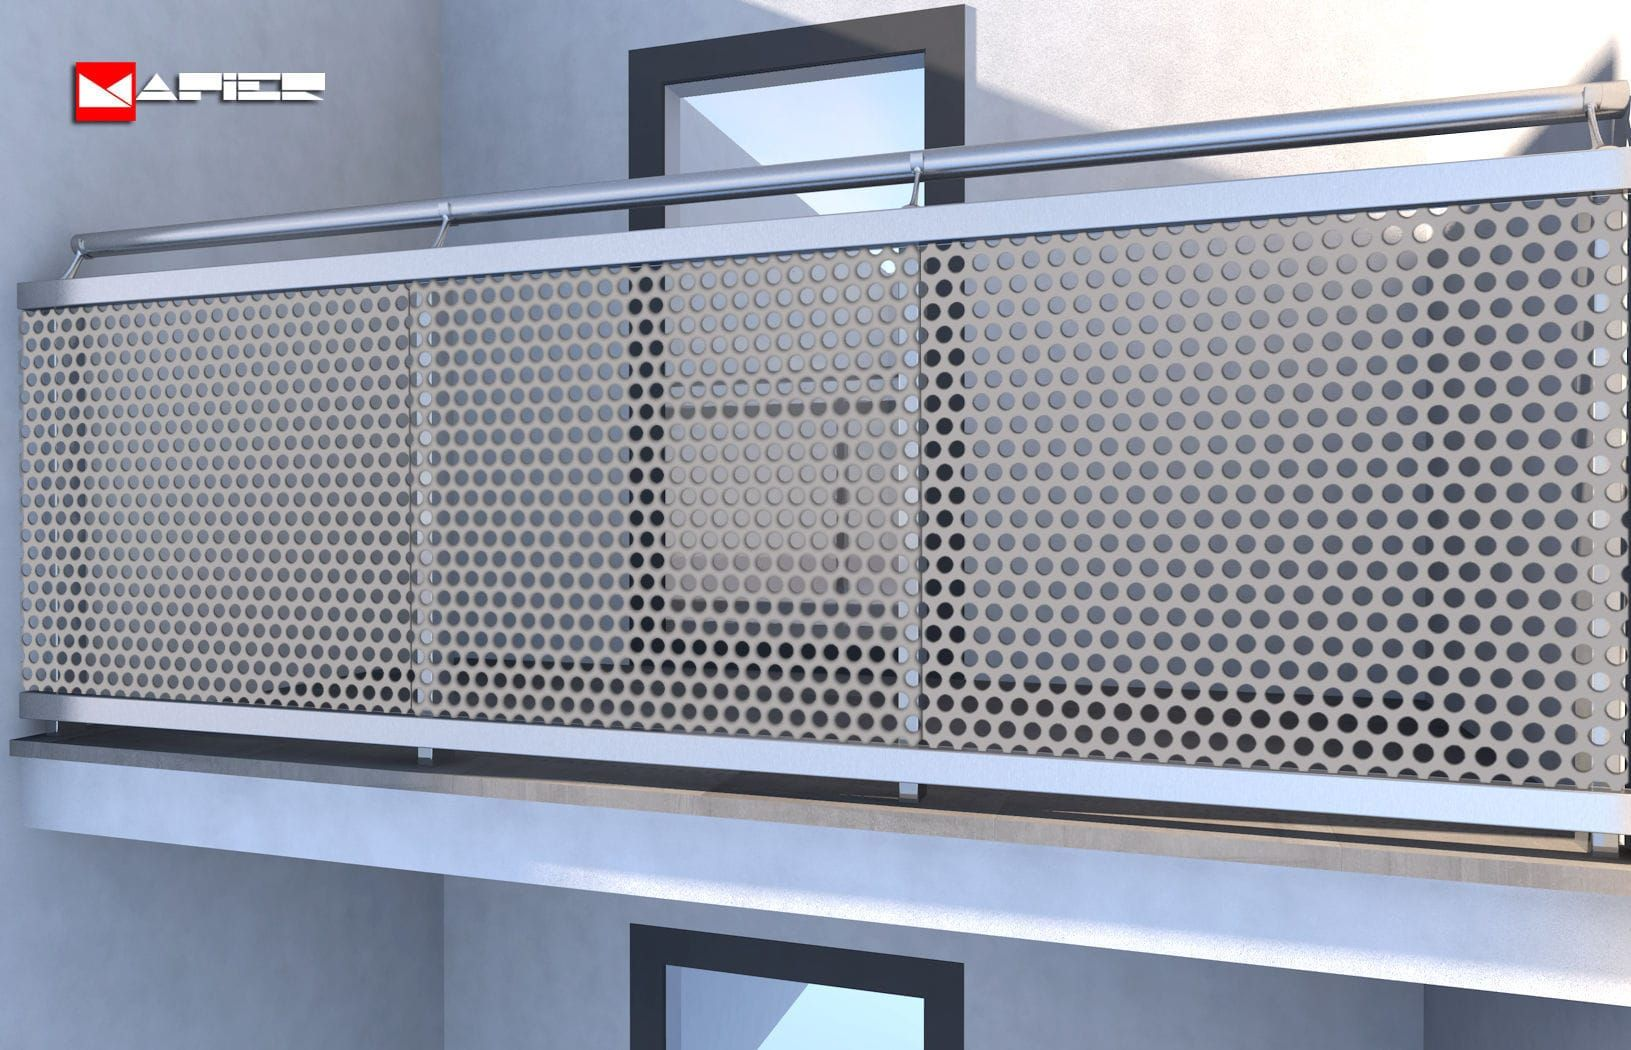 Aluminum Railing X2f Perforated Sheet Metal X2f For Patios X2f For Balconies Brunelleschi Mapier Barandas Balcones Barandillas Escaleras Barandas